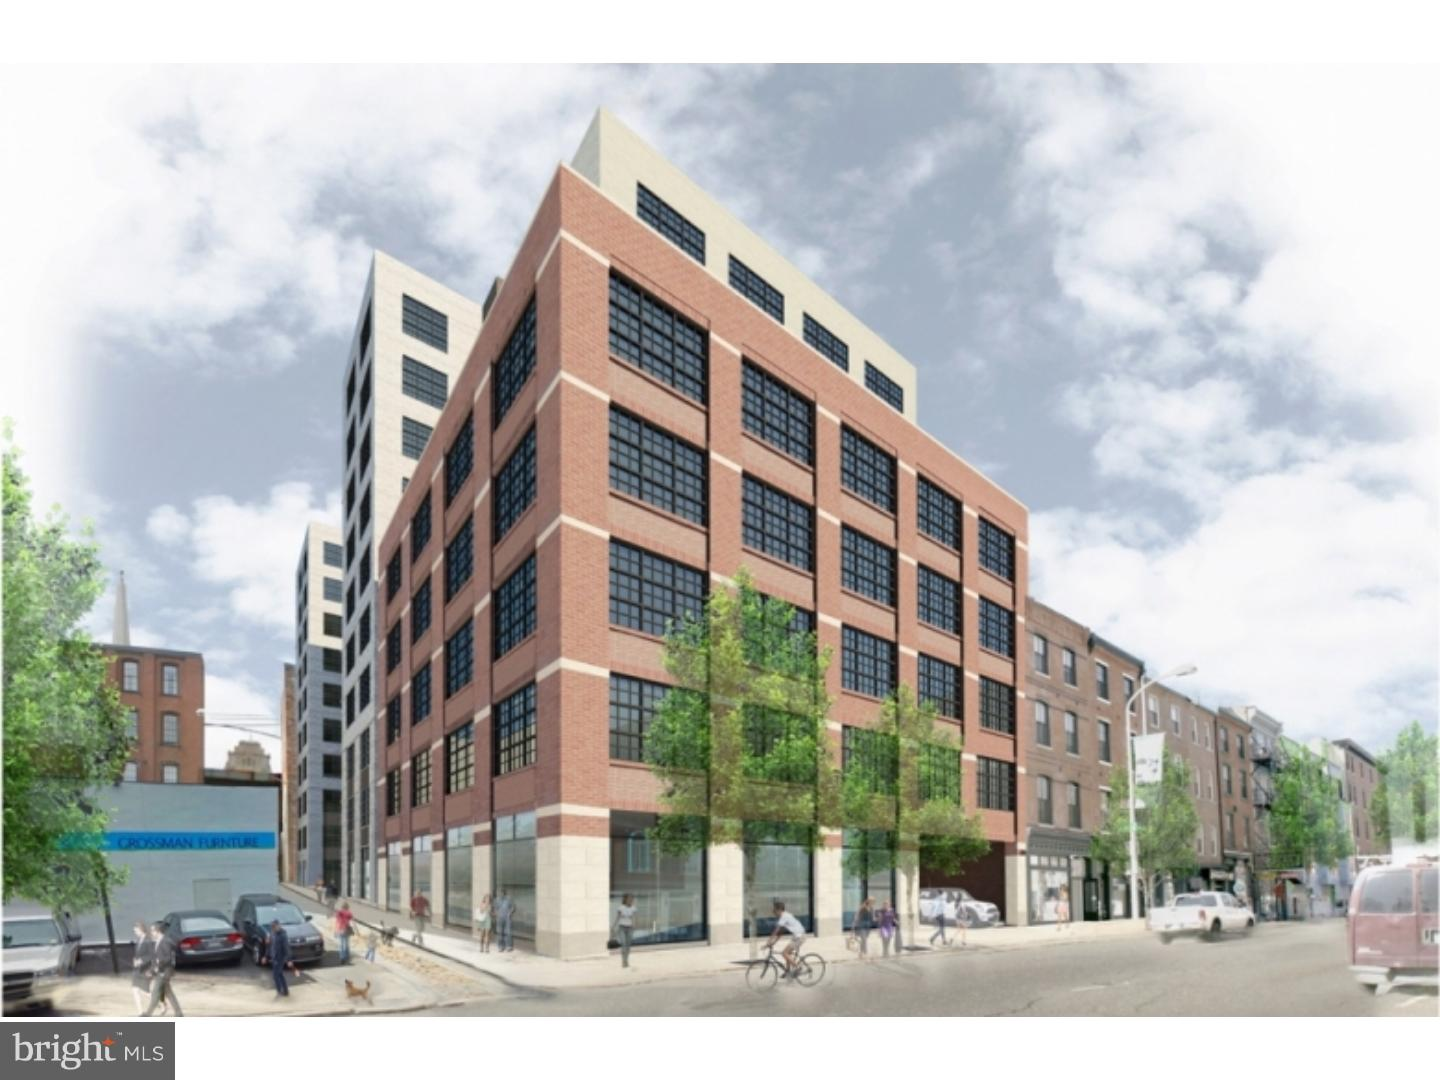 ONE MONTH FREE on a 13 month lease, and WAIVED APPLICATION FEES for a limited time!218 ARCH STREET.... THE BEST use of space and light !!! Residence 606 is a must see, WITH ITS OWN PRIVATE BALCONY. Fantastic, and all OPEN LIVING and DINING space. You will just love your stylish and CUSTOM KITCHEN with all granite countertops, stainless steel appliances, and BREAKFAST BAR. Your bedroom is well proportioned, and all tile bath, is ELEGANT! 218 Arch is filled with amenities: ROOF top lounge,with glorious views of the BEN FRANKLIN bridge and Center City, PRIVATE resident courtyard, GYM, PELATON room, LOUNGE,with flat screen TVs, billiards, business center, and GARAGE parking for additional fee! ! ! Luxury and Value in the heart of OLD CITY! ! ! ! ! ! ! ! ! ! ! ! ! Walking score 110! Photo's are of model unit.